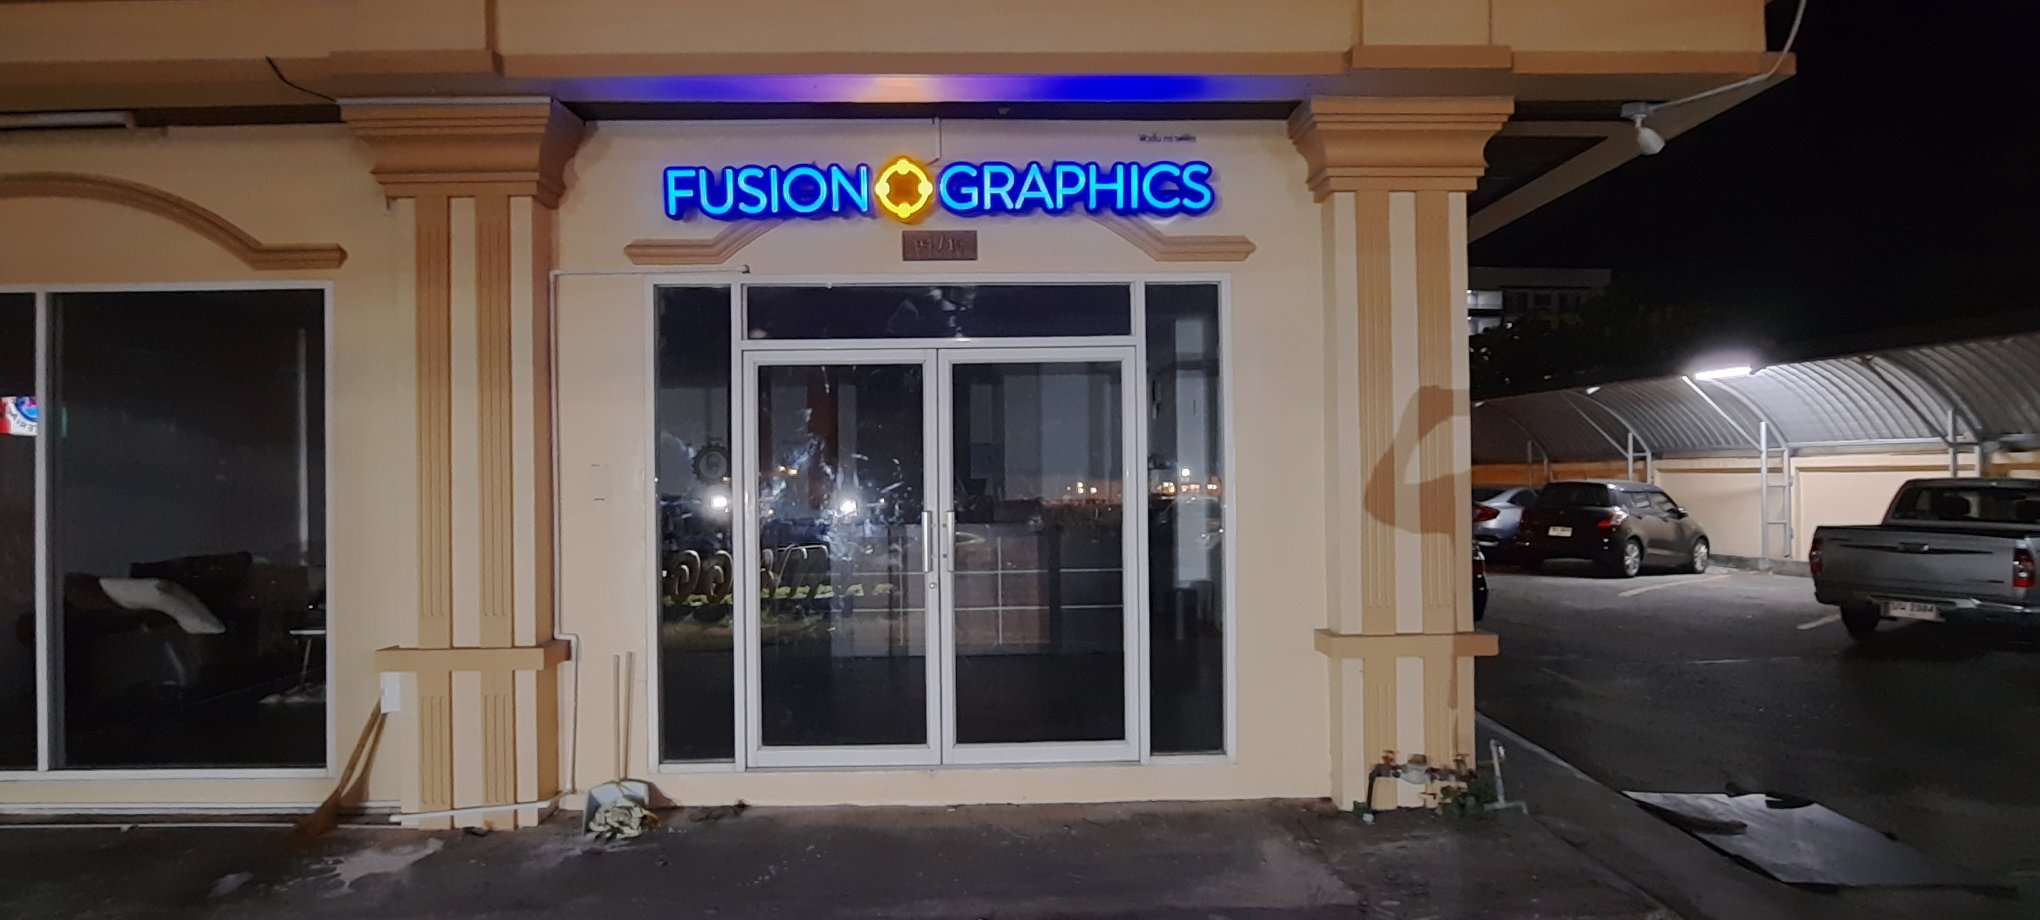 Fusion Graphics Studio in Phuket